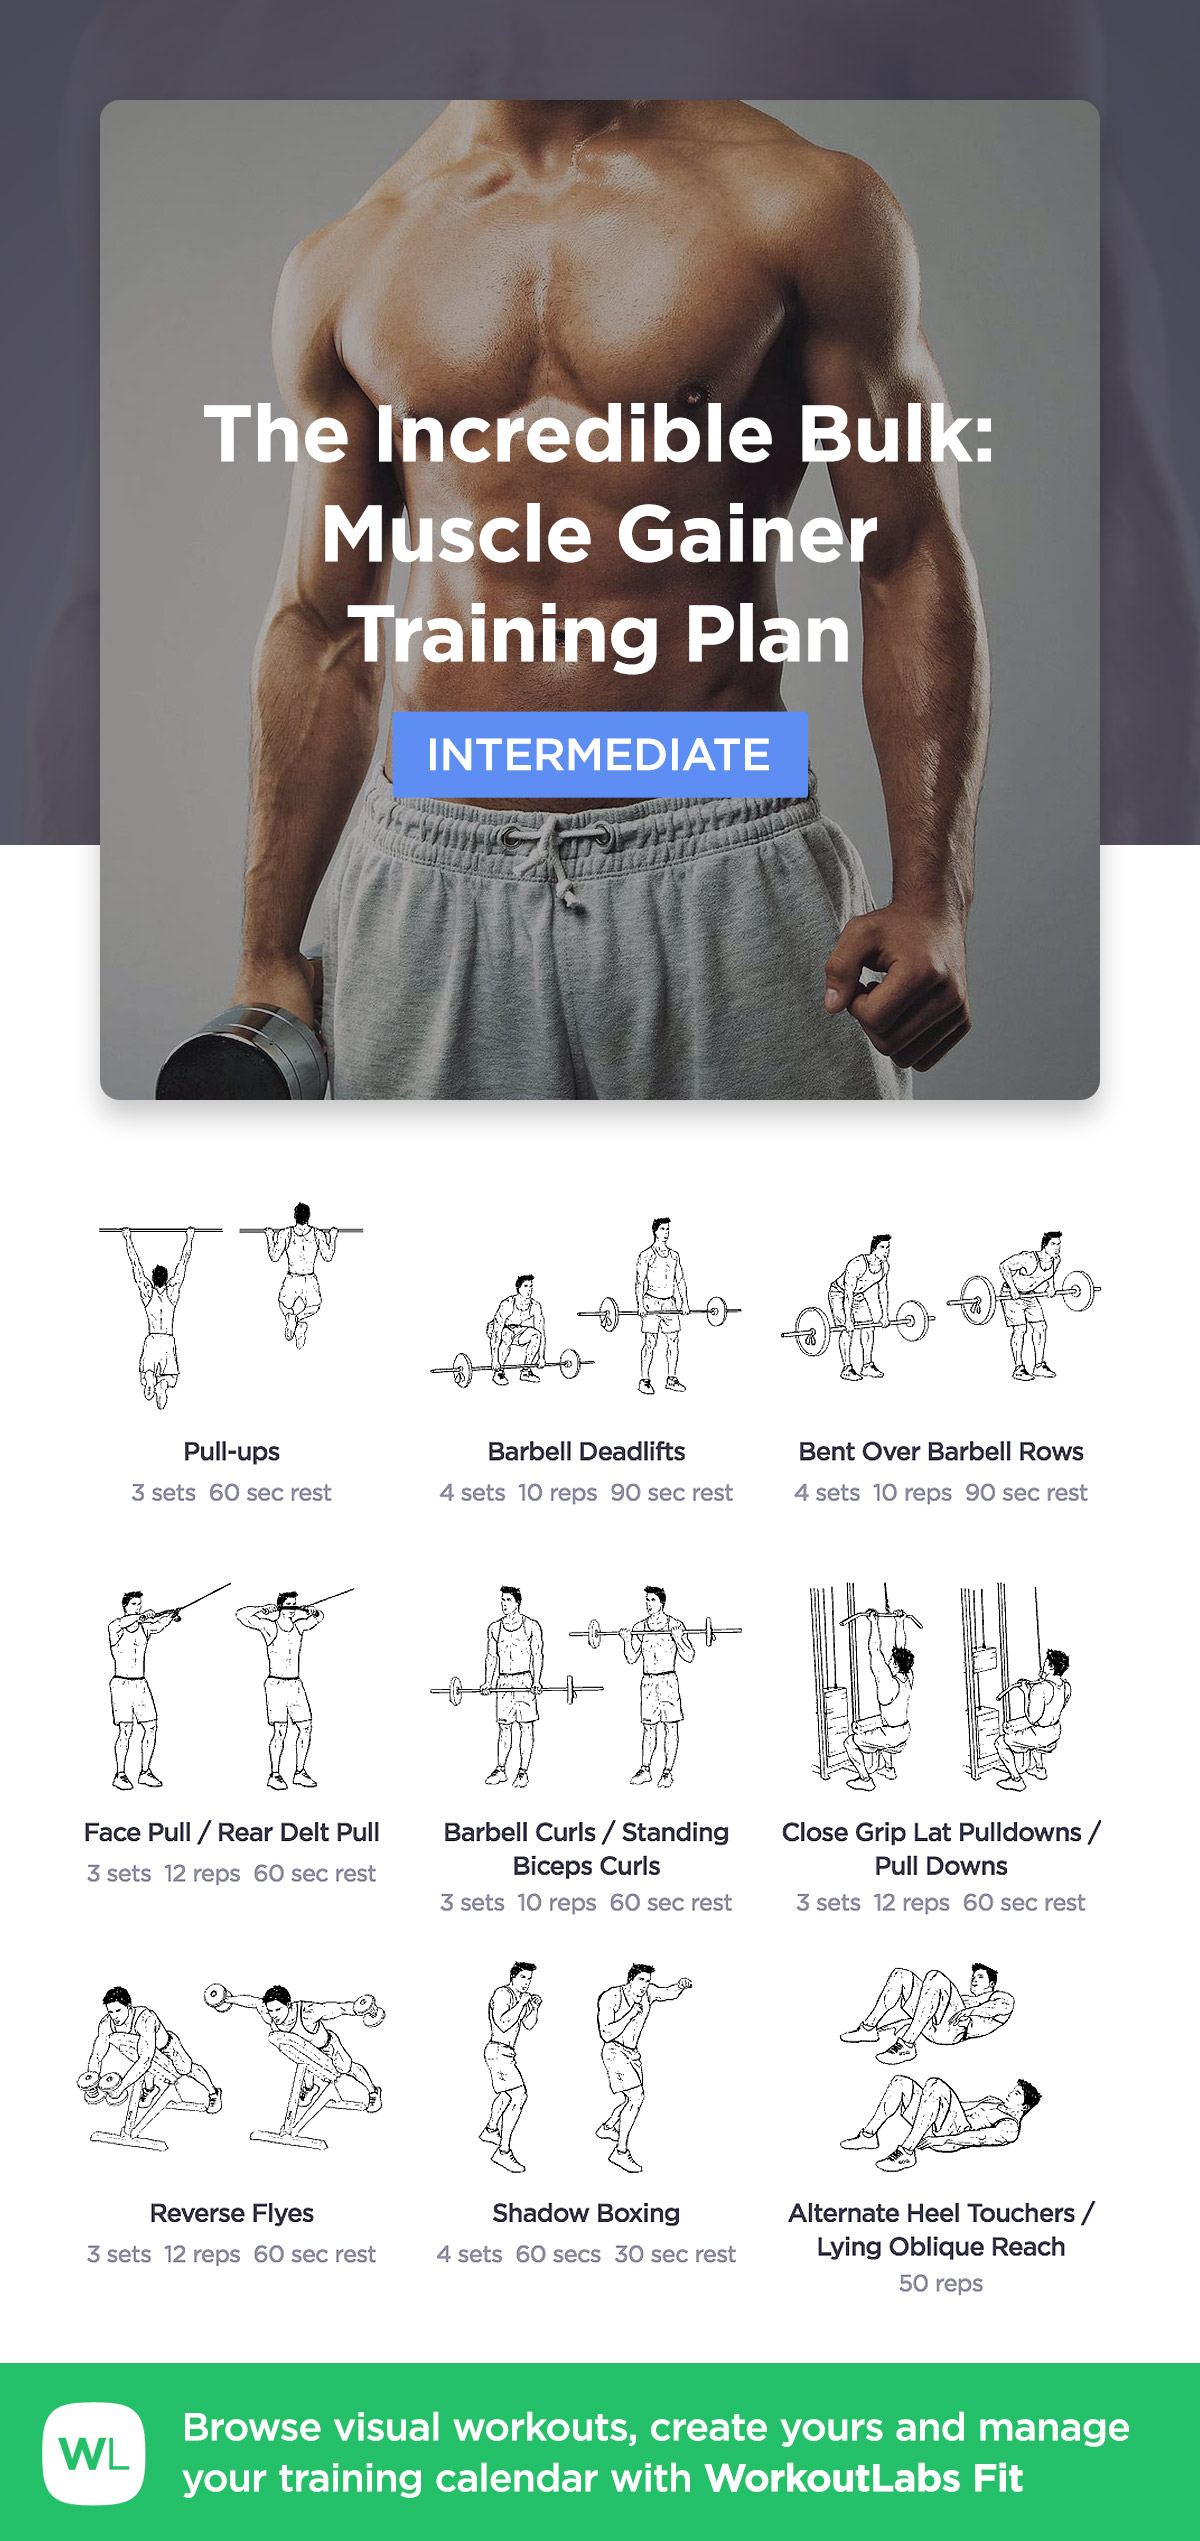 The Incredible Bulk: Muscle Gainer · WorkoutLabs Fit